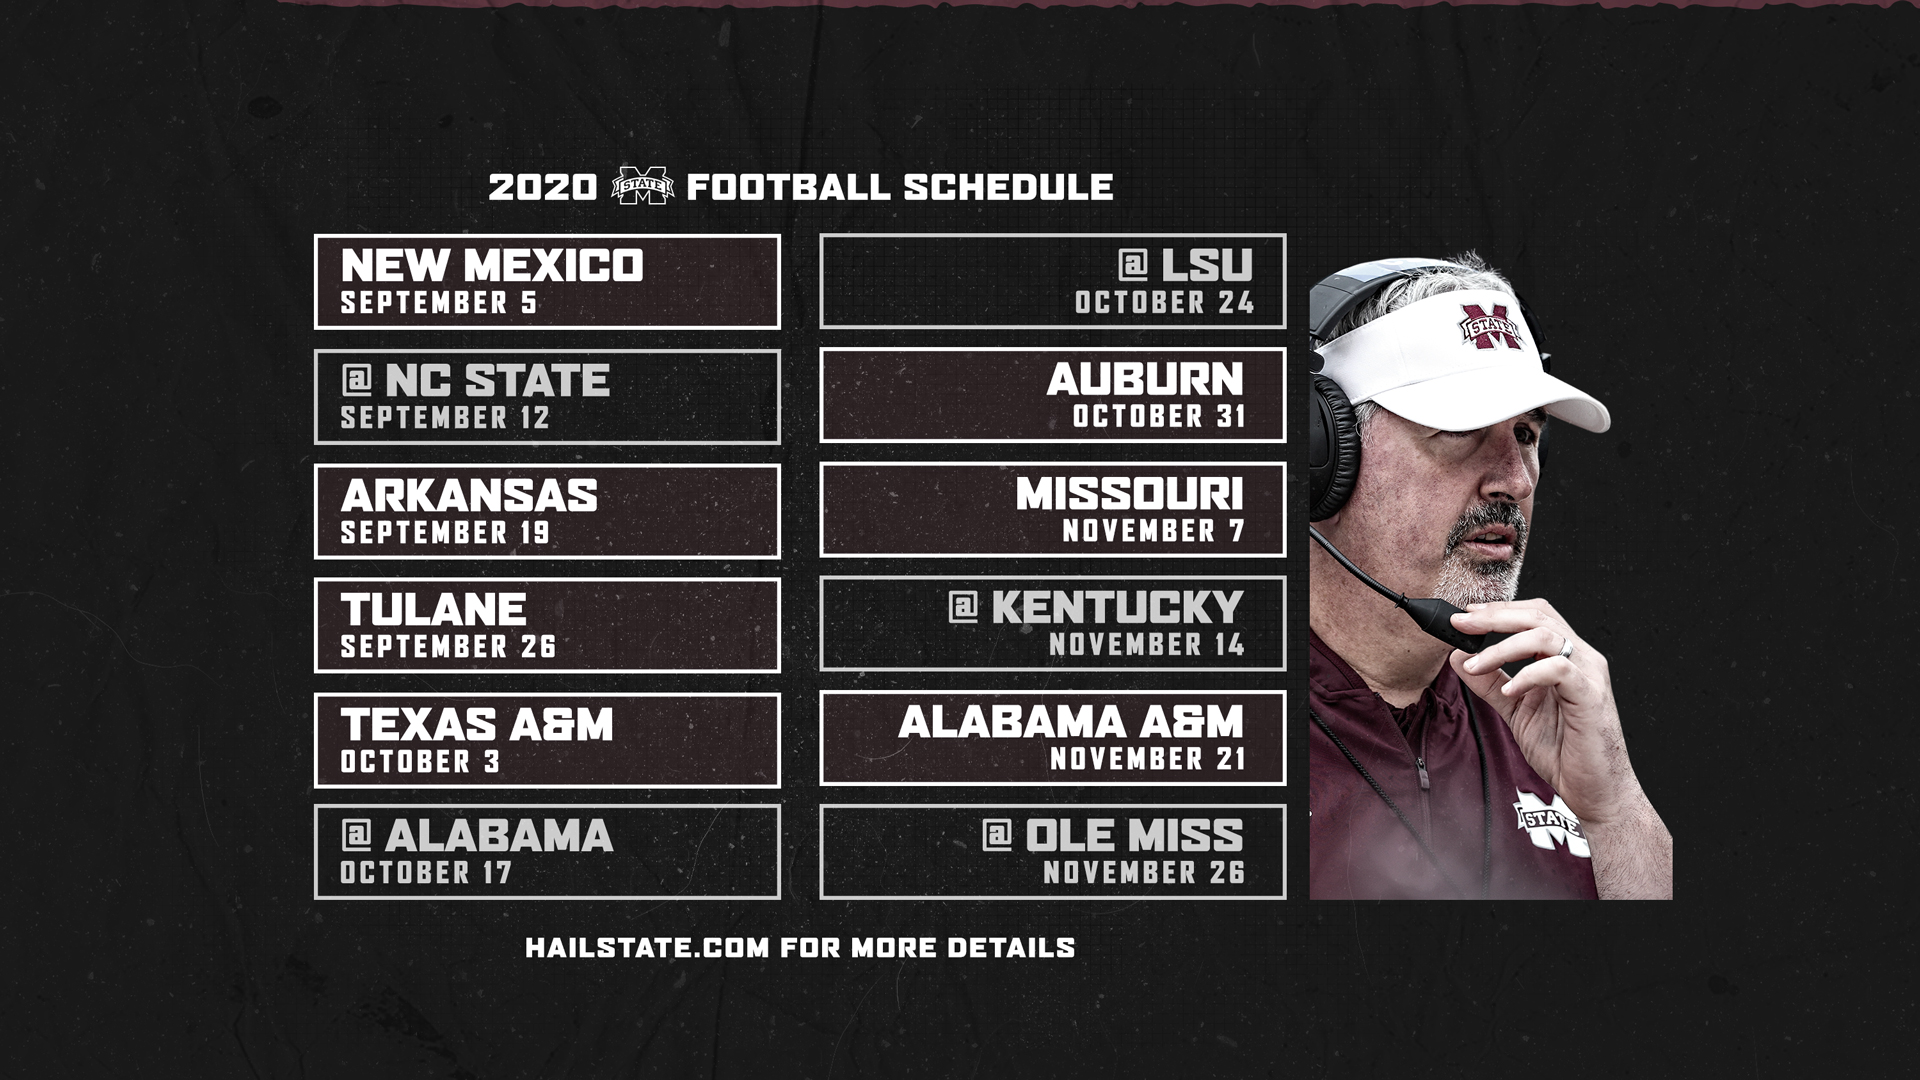 Mu Football Schedule 2020 2020 Football Schedule Announced   Mississippi State